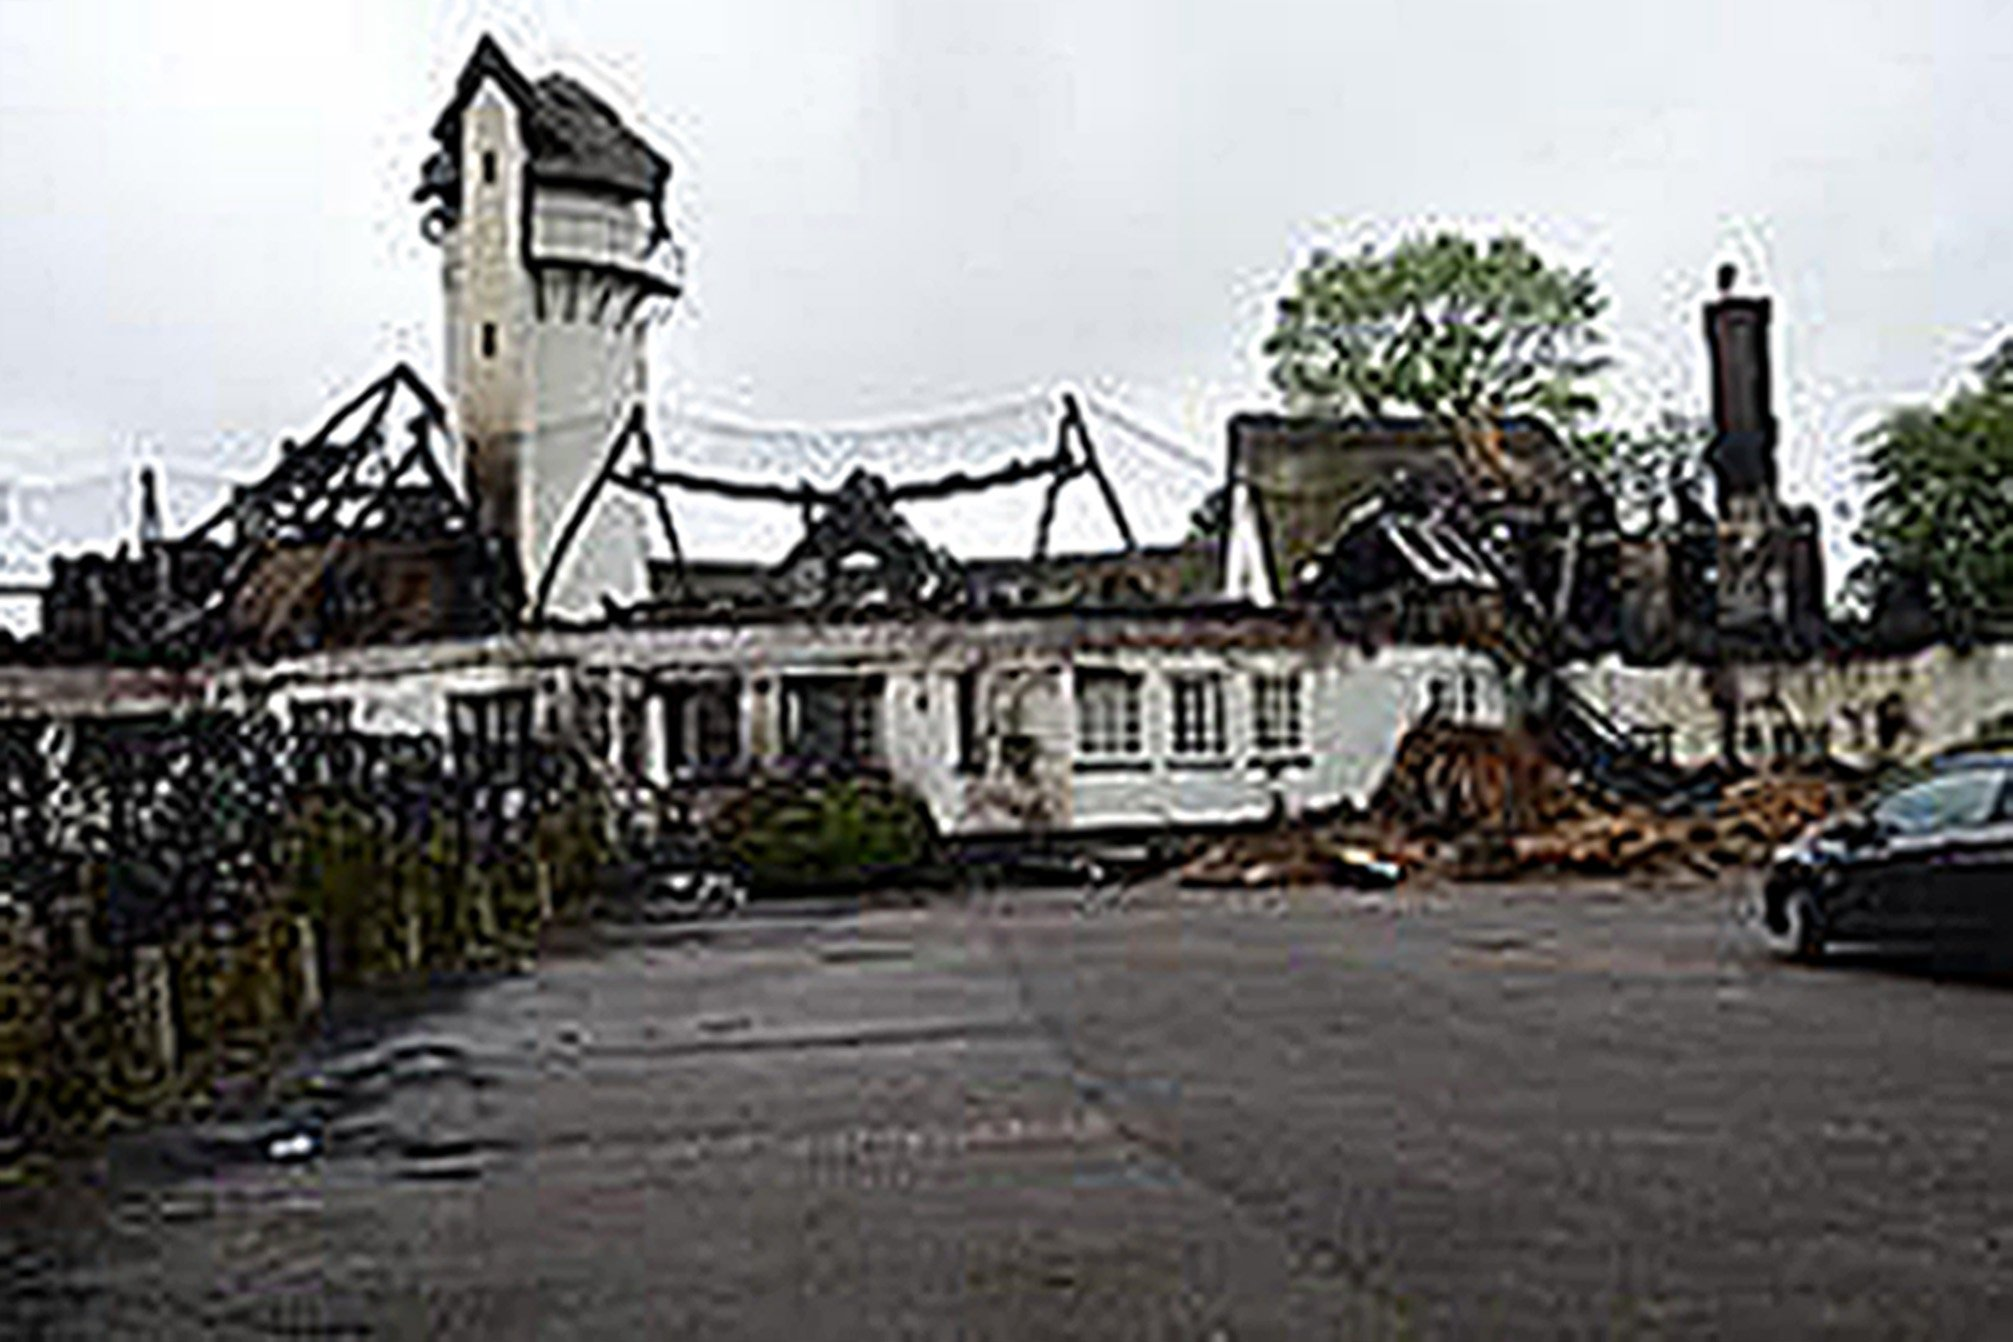 BEST QUALITY AVAILABLE Undated handout photo issued by Hertfordshire Police of the damaged caused by Joshua Bozier, who has been jailed after he caused millions of pounds of damage with the fire that destroyed one of the country's largest thatched roofs. PRESS ASSOCIATION Photo. Issue date: Wednesday March 1, 2017. Bozier started the blaze at the Grade II-listed Node Court in Codicote, Hertfordshire, which is thought to have been one of the country's most costly arson attacks. See PA story POLICE Arsonist. Photo credit should read: Hertfordshire Police/PA Wire NOTE TO EDITORS: This handout photo may only be used in for editorial reporting purposes for the contemporaneous illustration of events, things or the people in the image or facts mentioned in the caption. Reuse of the picture may require further permission from the copyright holder.